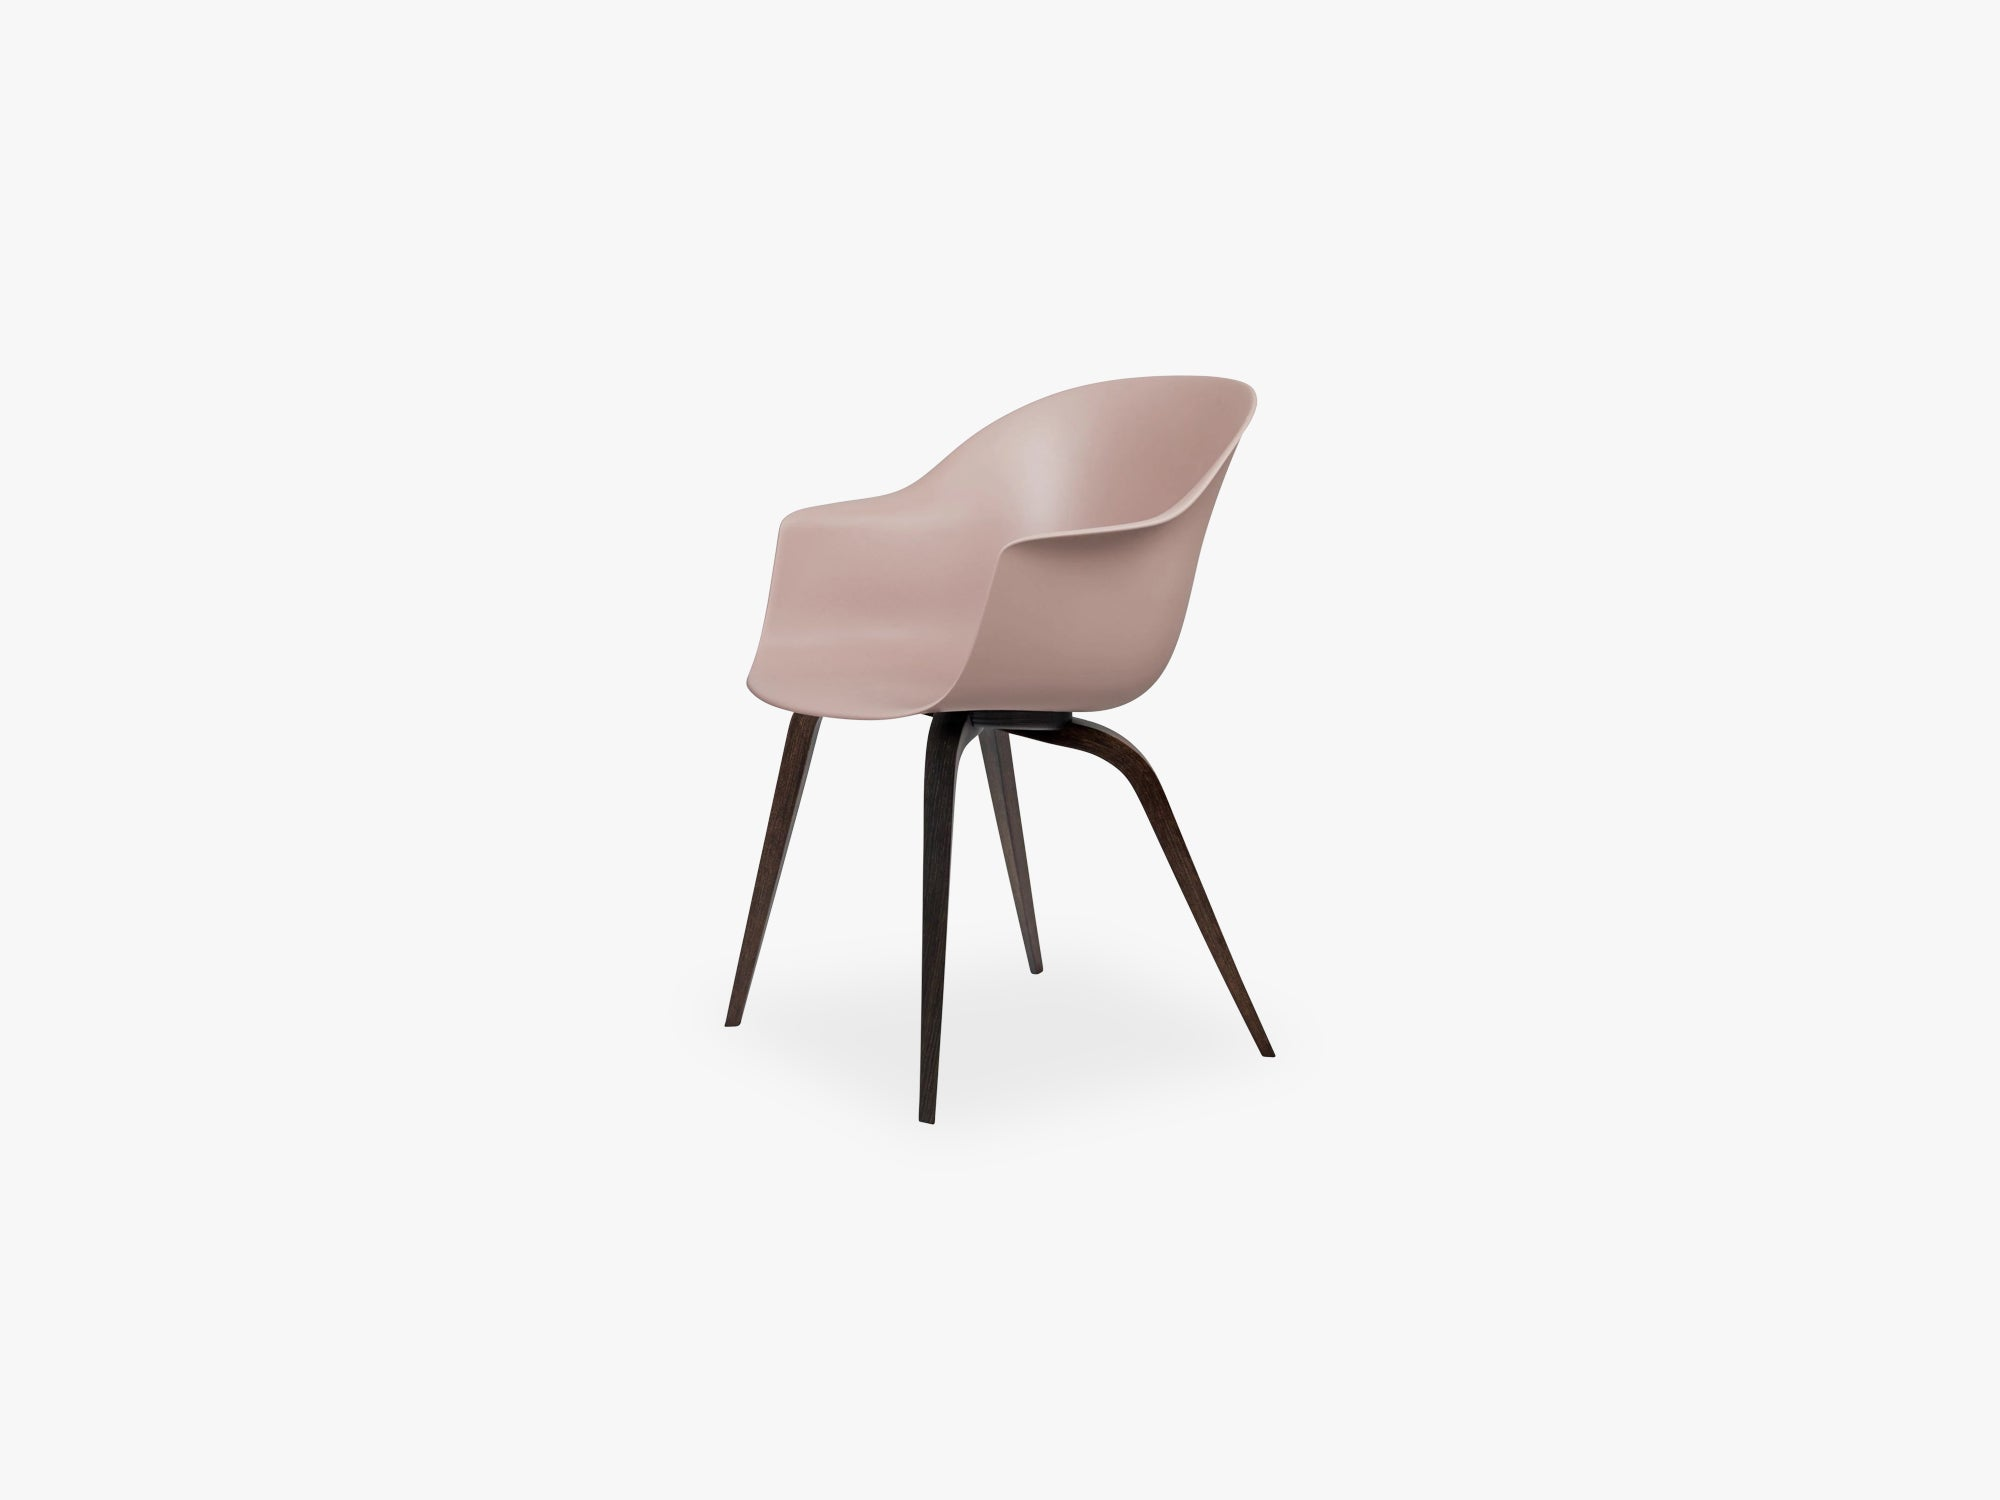 Bat Dining Chair - Skal m Wood base - Smoked Oak Matt, Sweet Pink fra GUBI